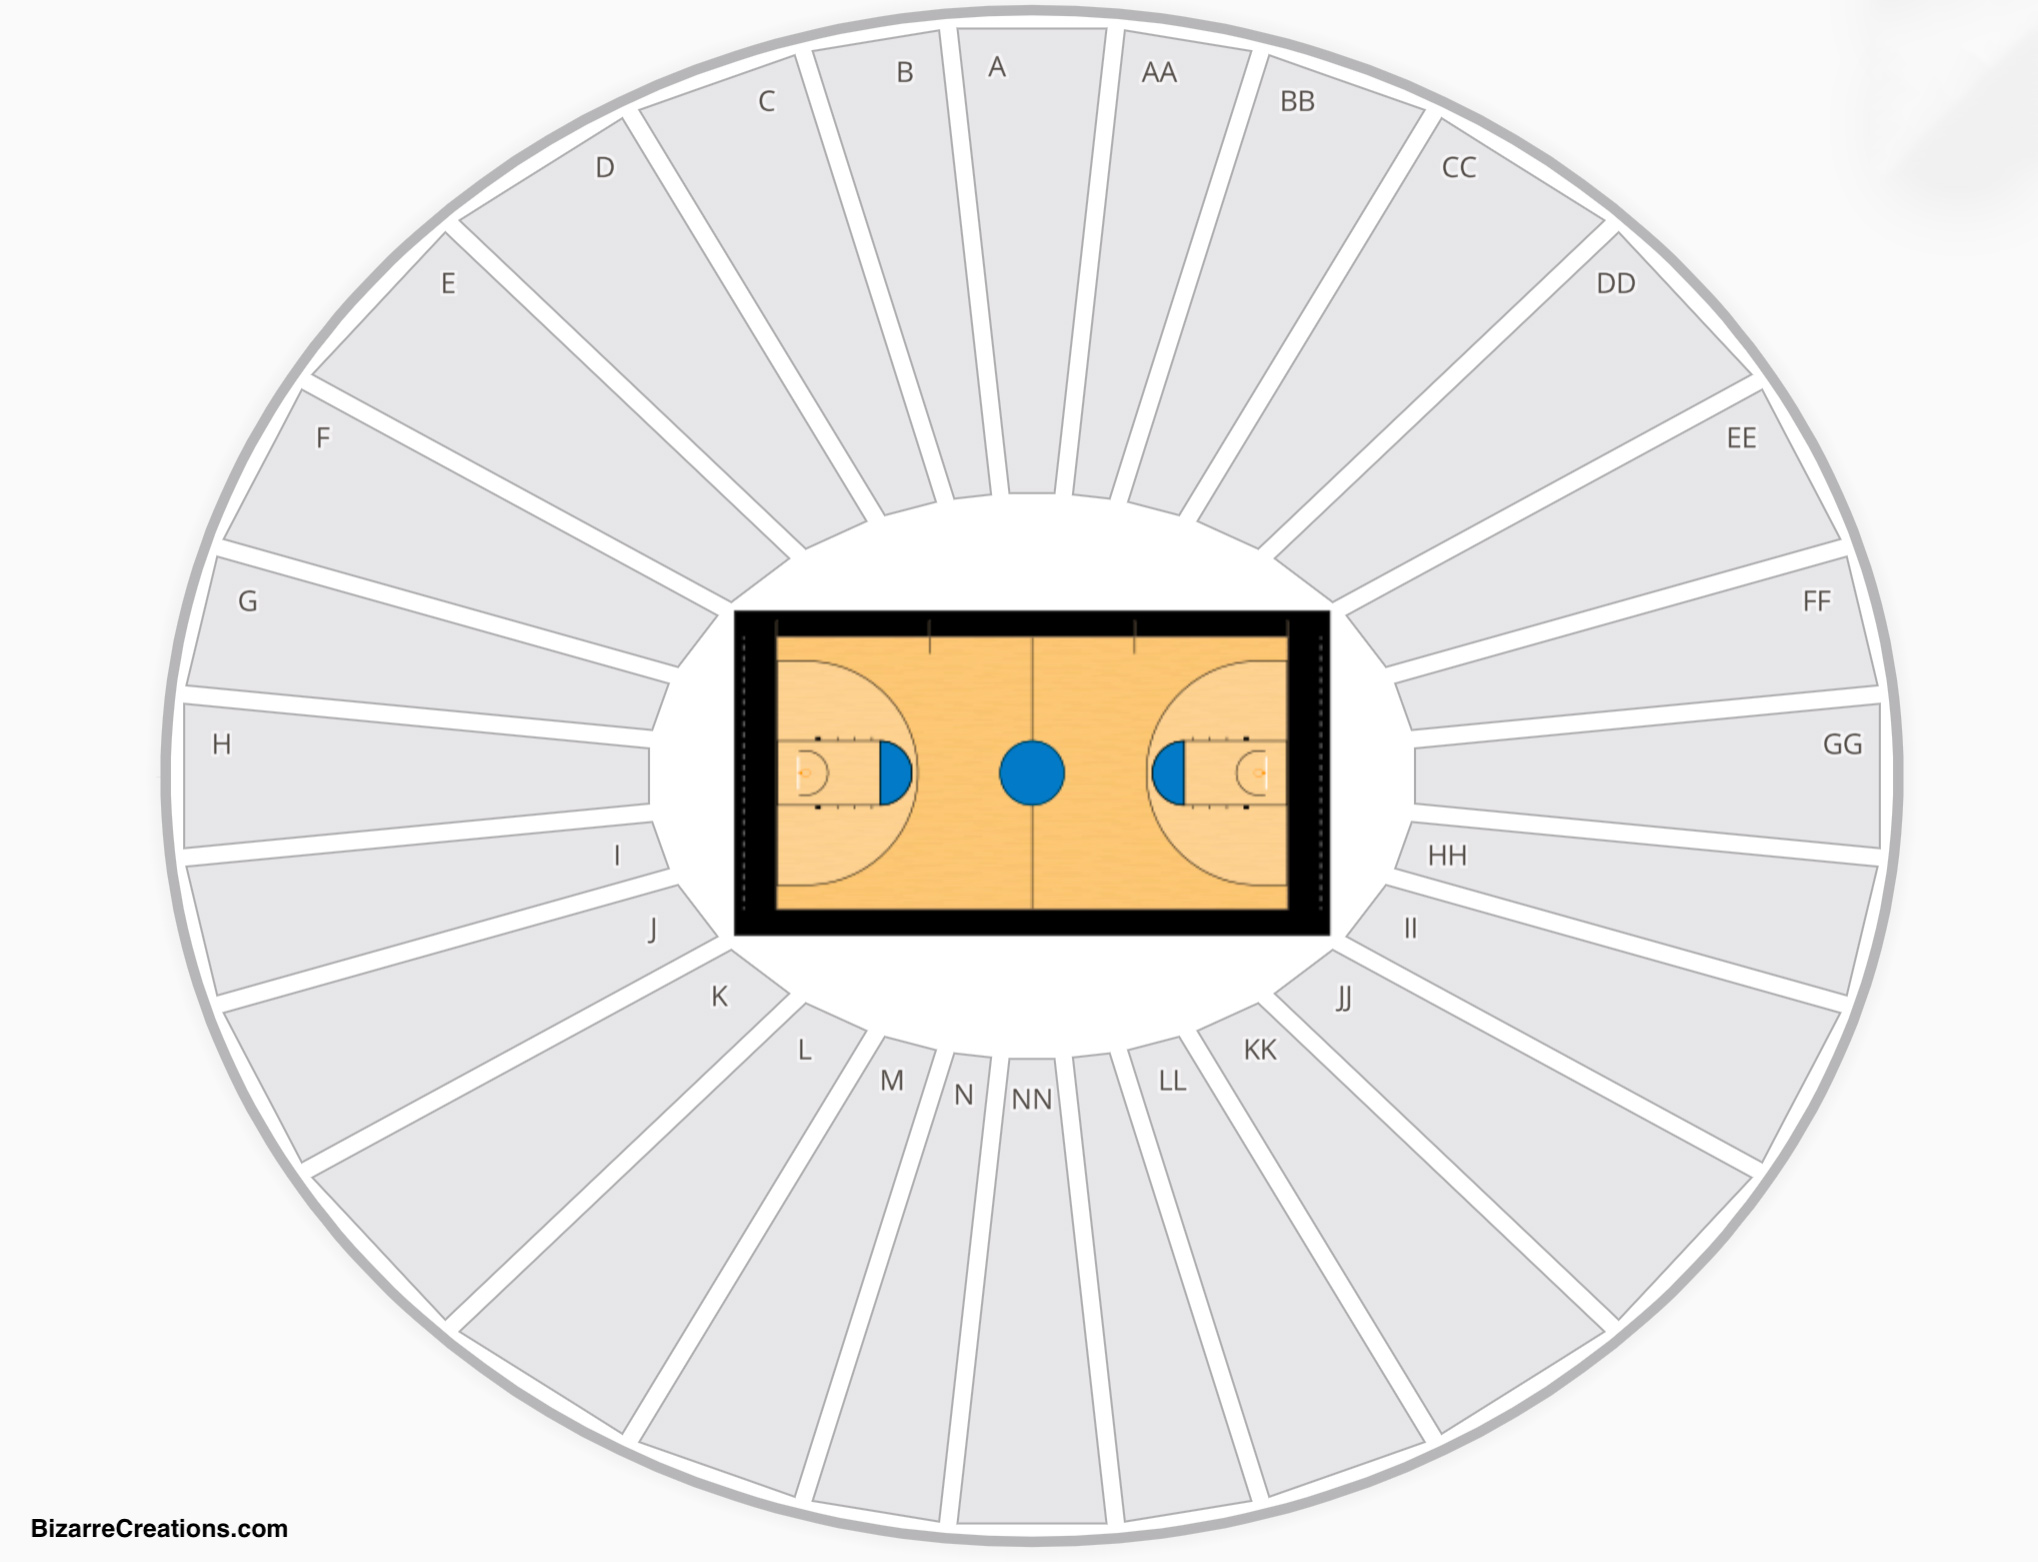 Carver Hawkeye Arena Seating Chart Seating Charts Tickets